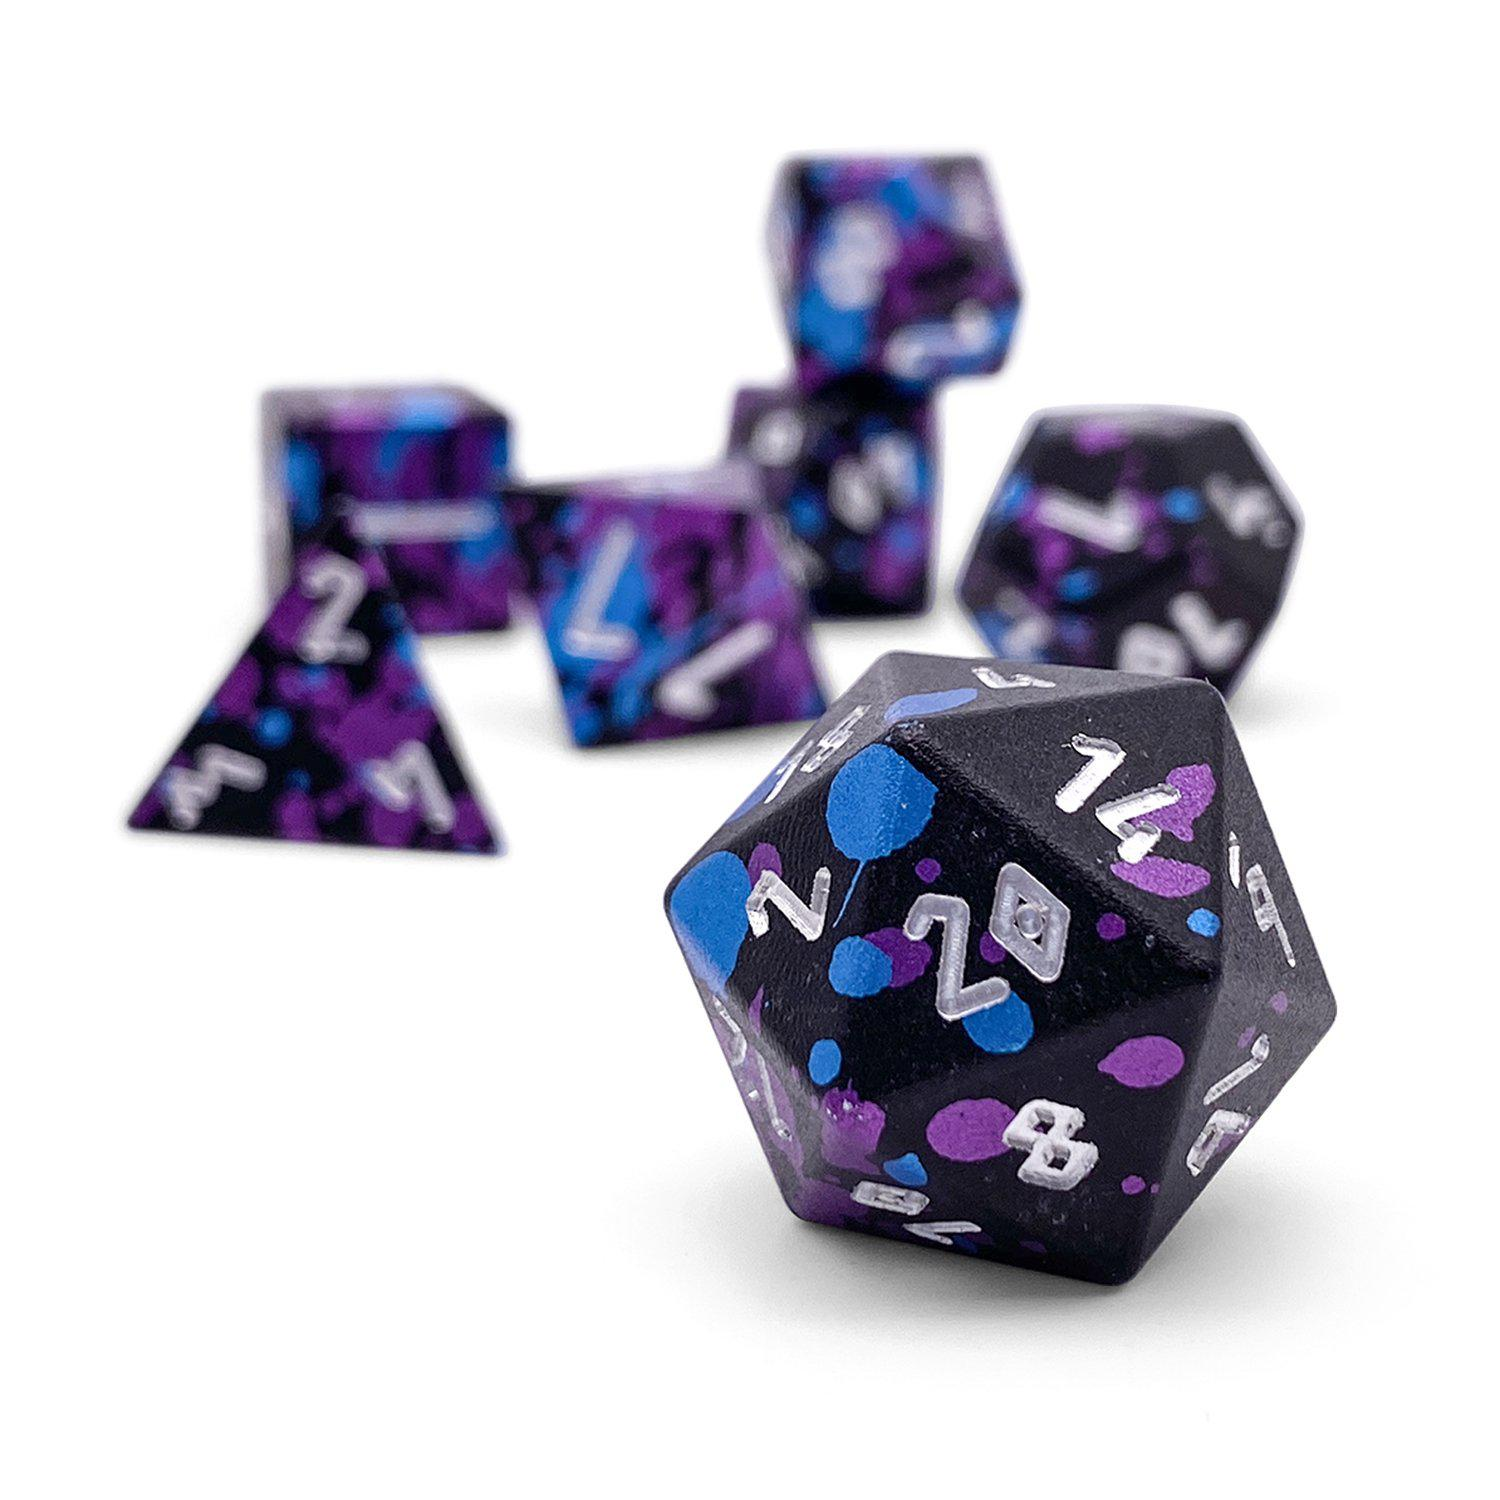 Wizard Apprentice - Wondrous Dice Set of 7 RPG Dice by Norse Foundry Precision Polyhedral Dice Set